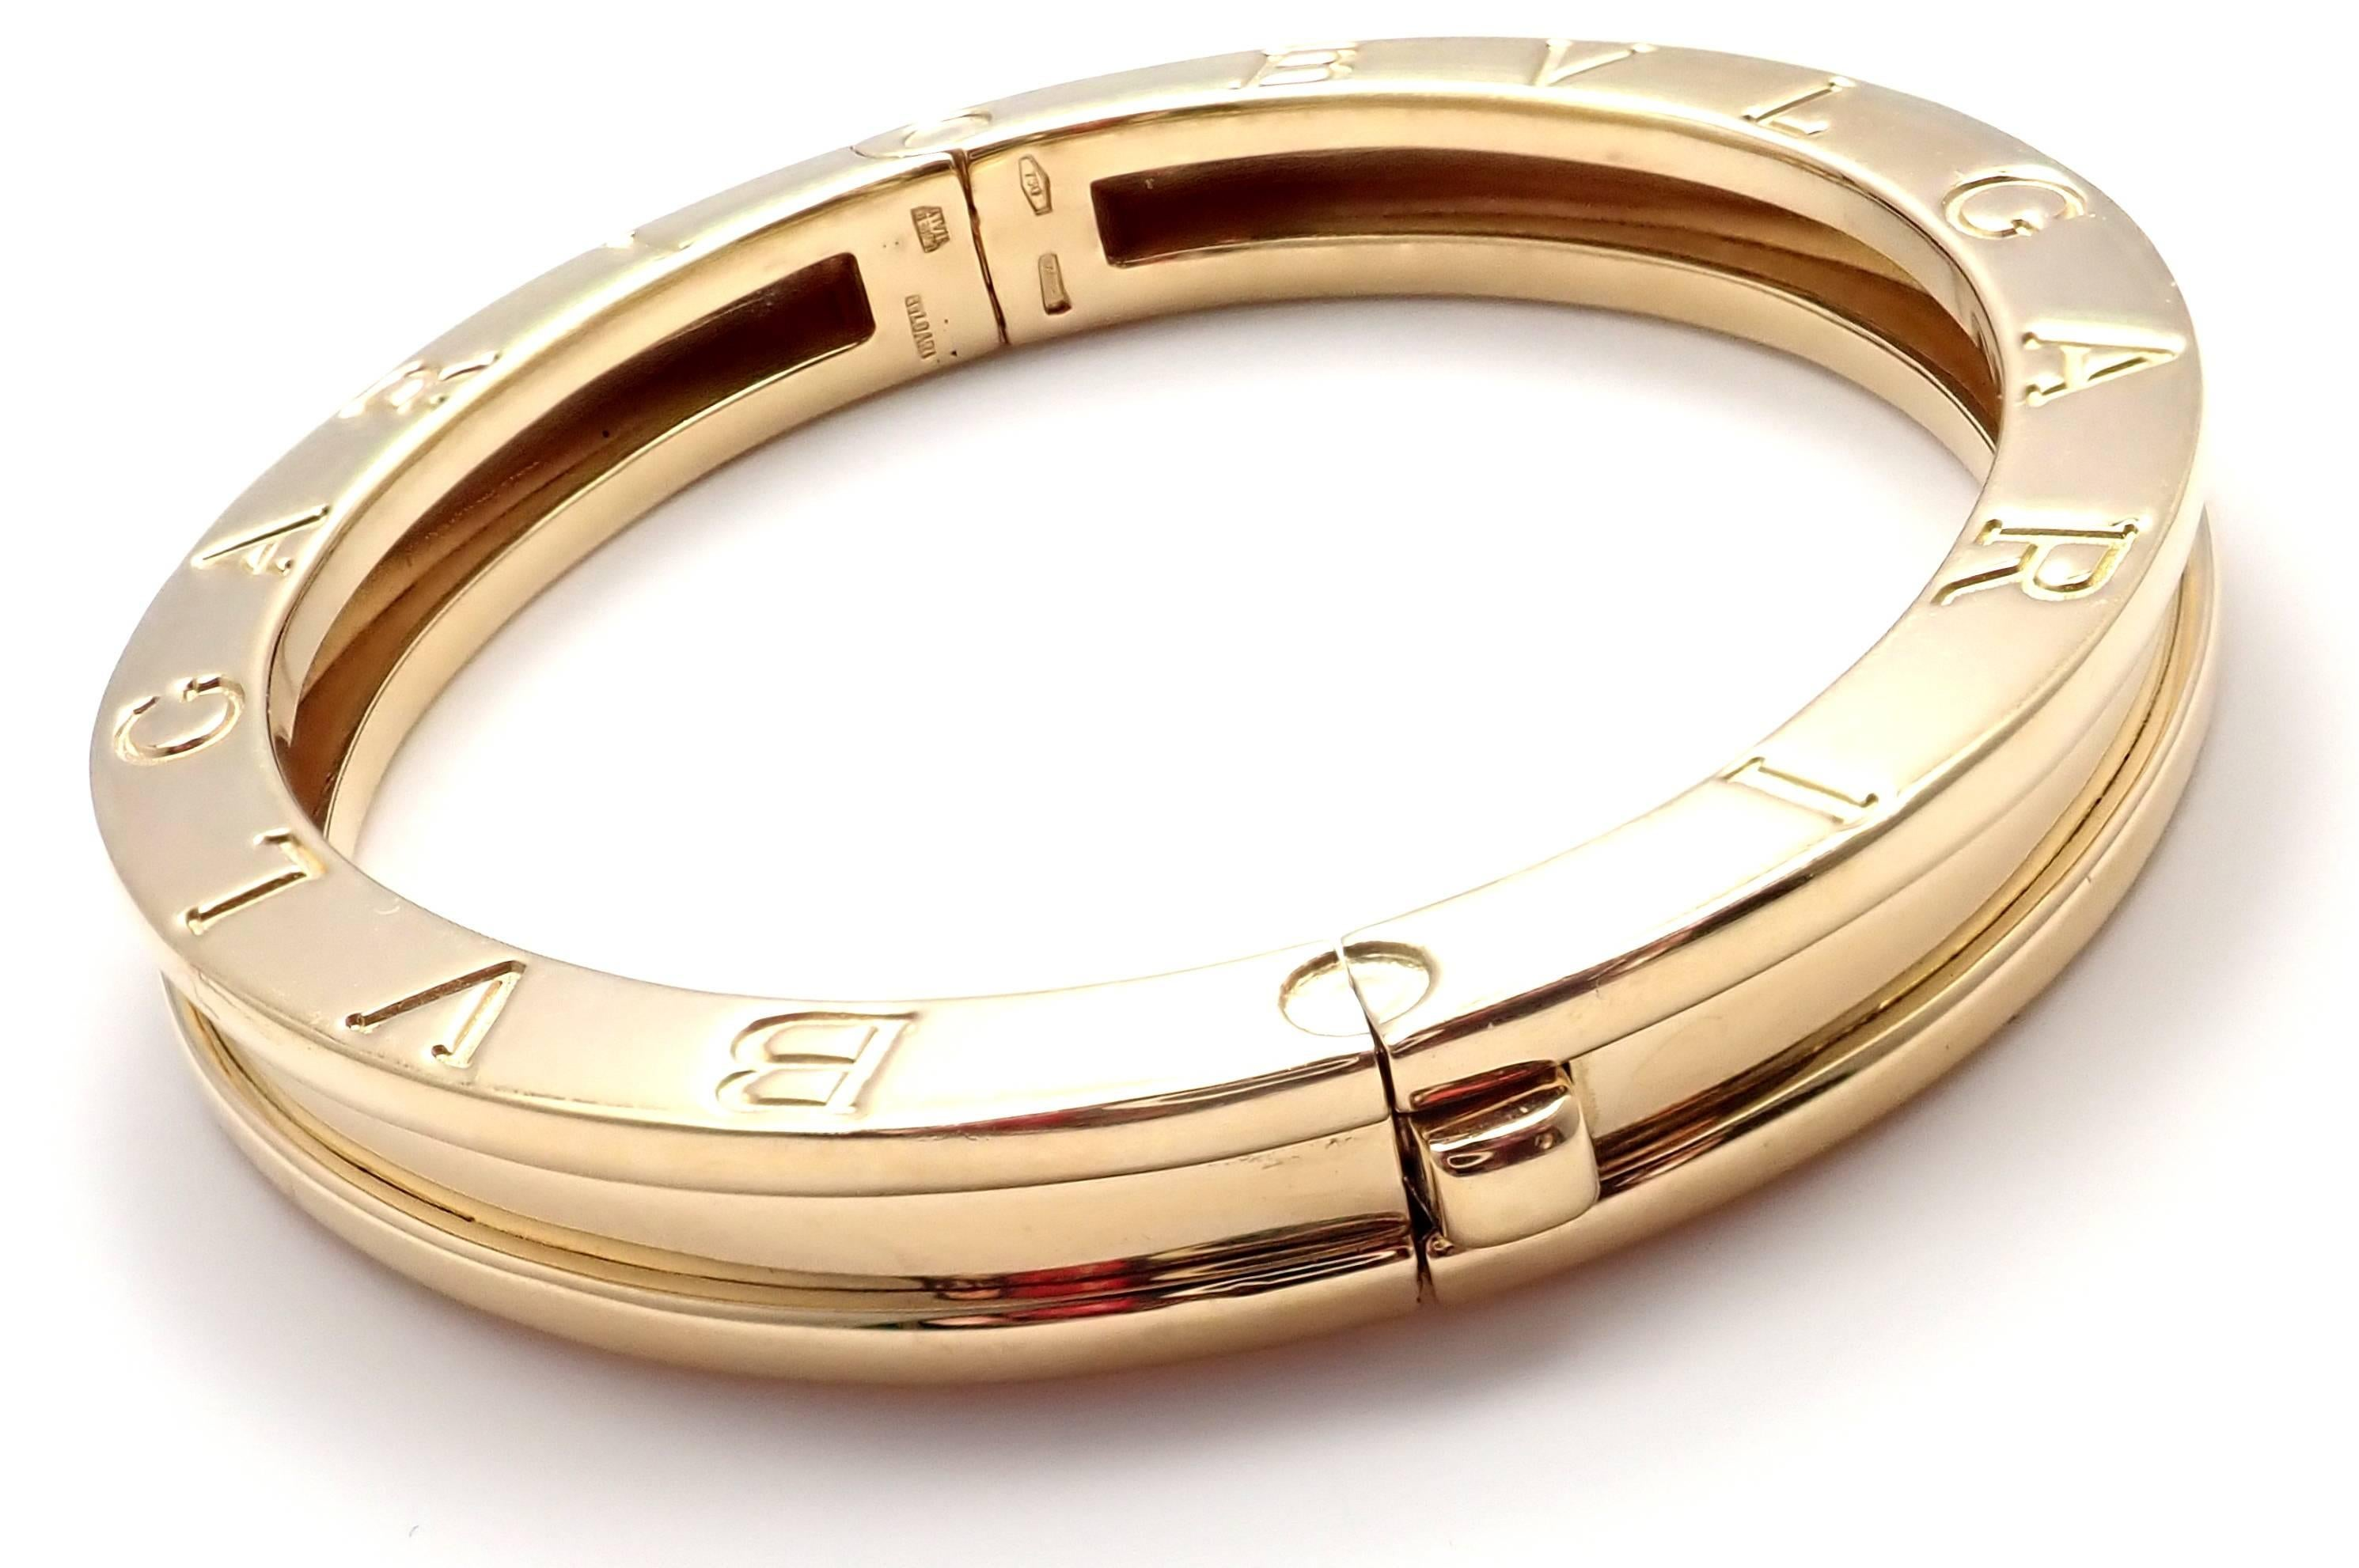 away anchor s jewelers king inch bangle archives sbb bracelet gold length bangles ww